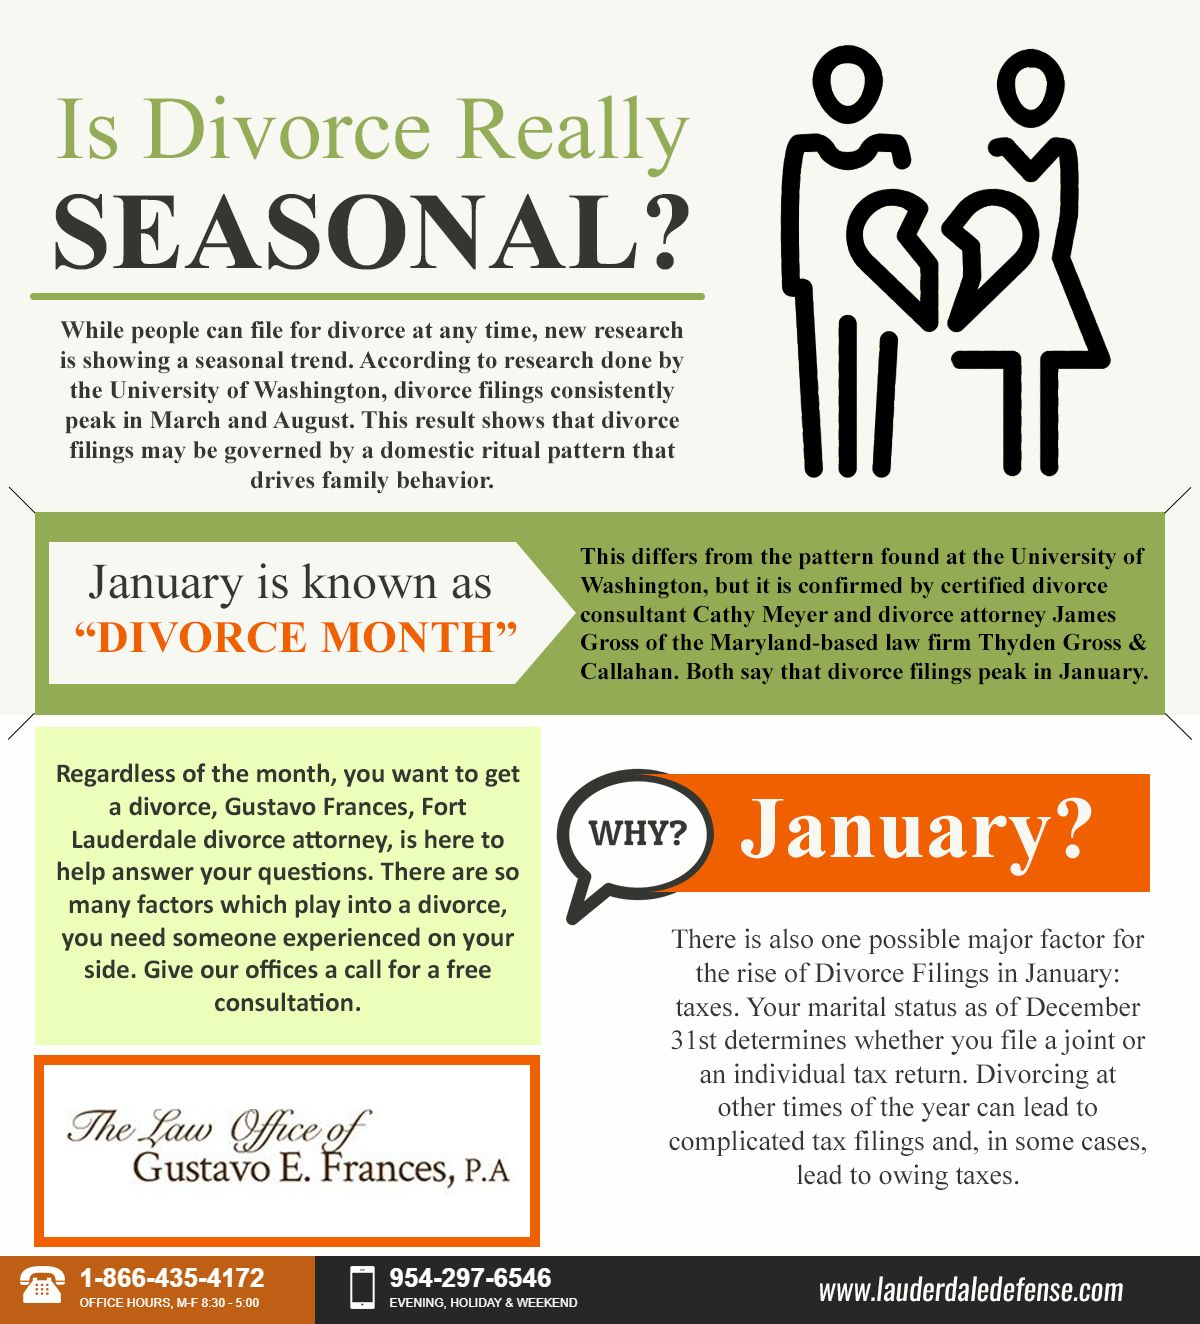 While people can file for divorce at any time, new